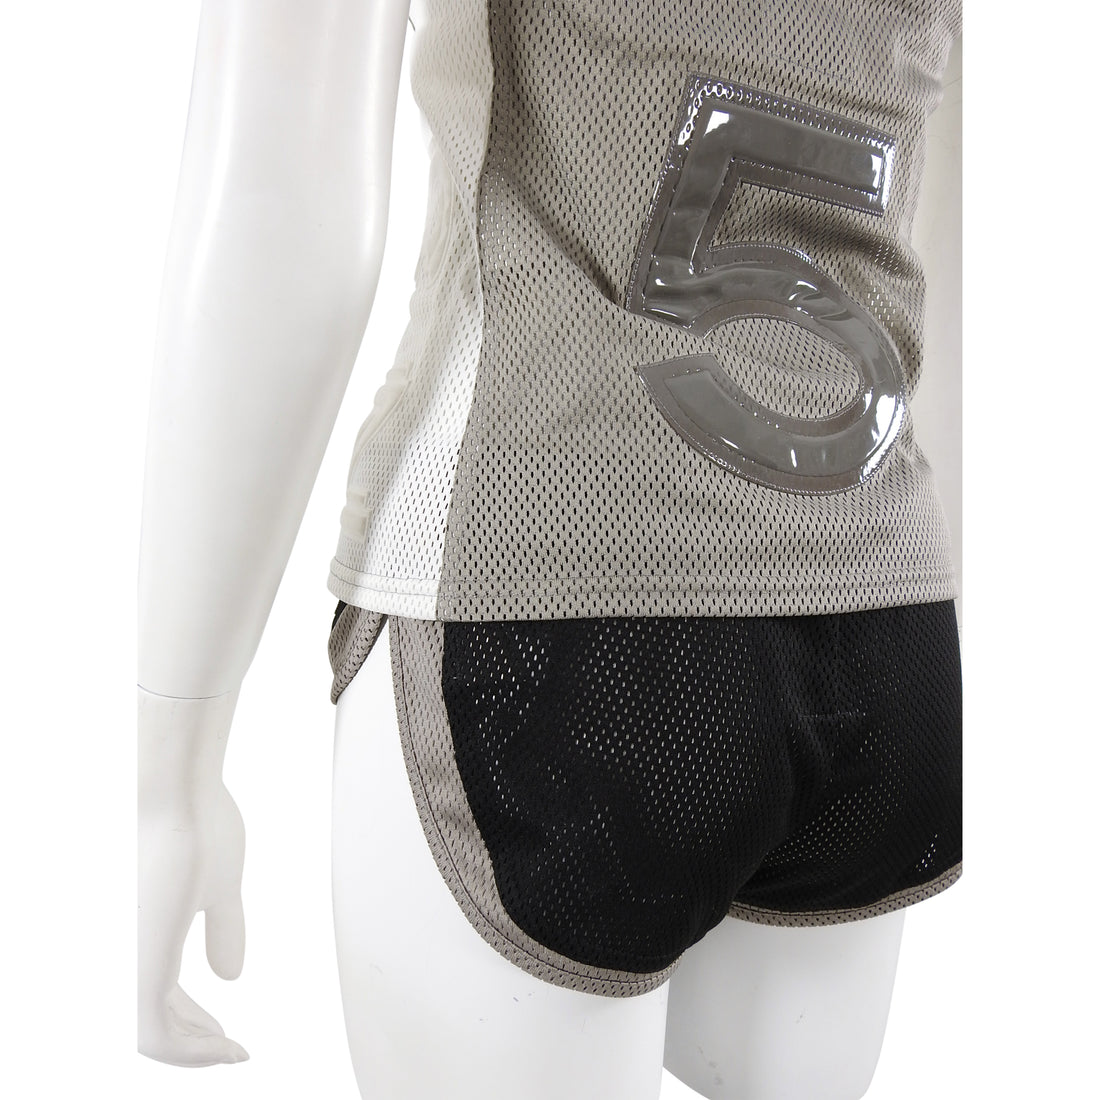 Chanel Sport 2004 CC Mesh Halter Top and Gym Shorts - 36